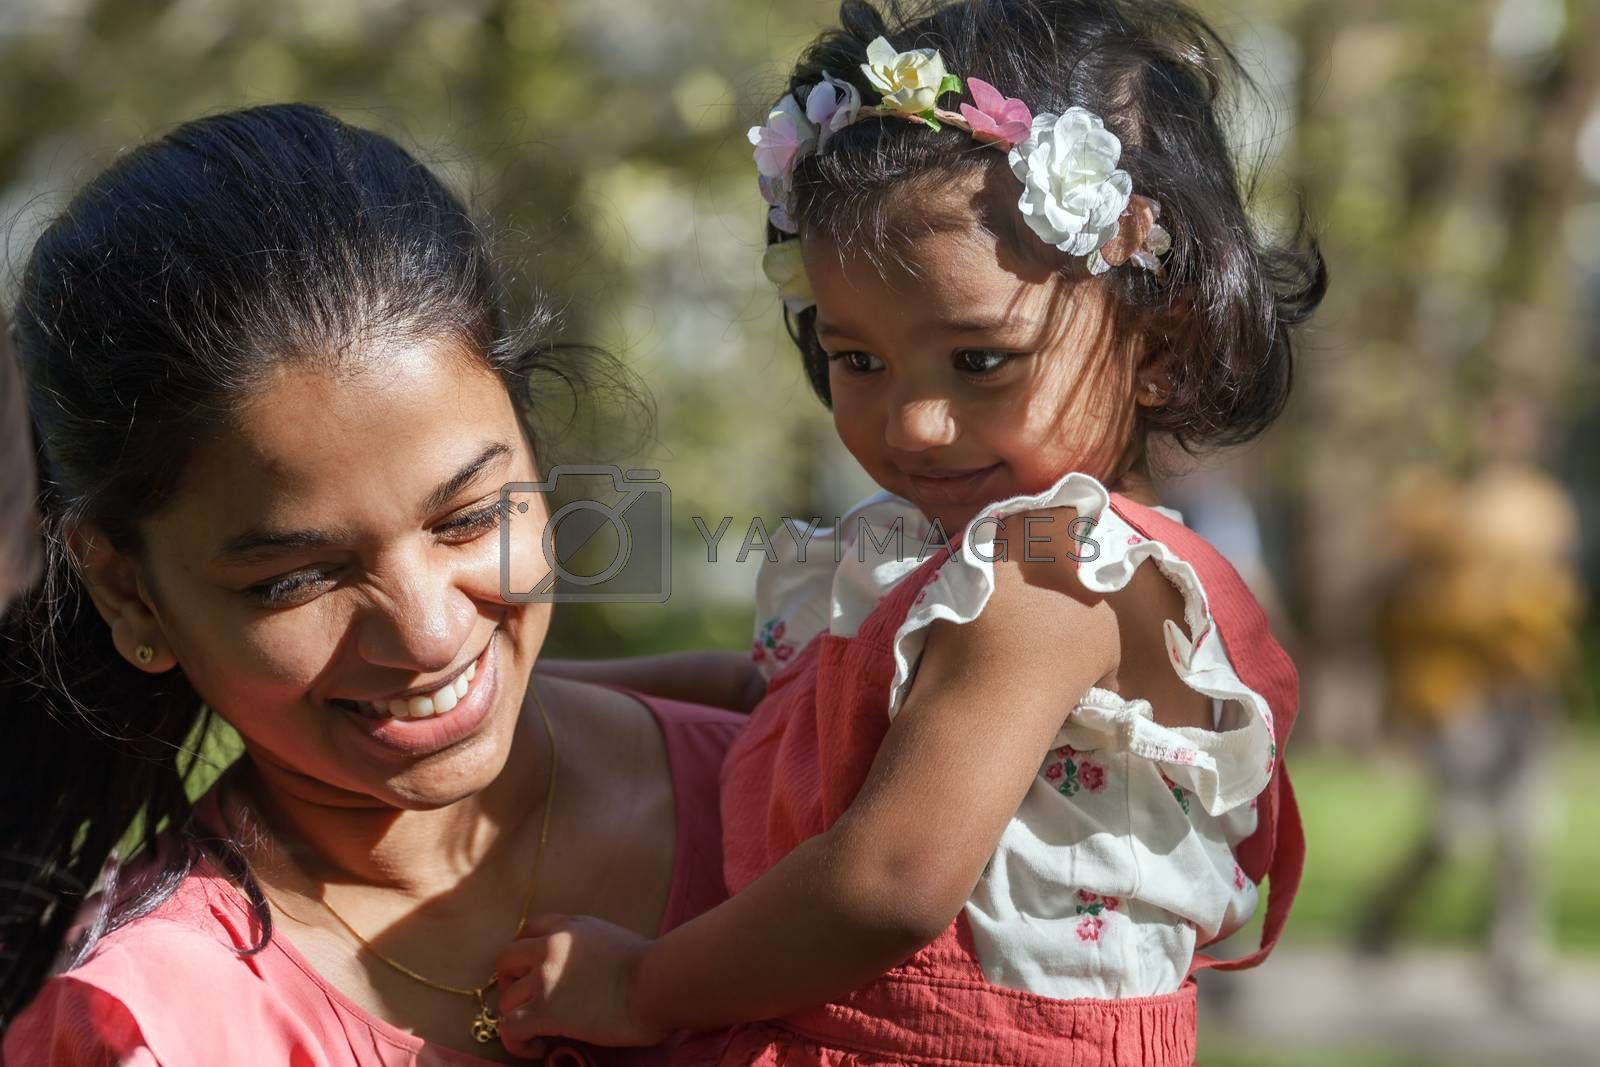 A happy south asian female with two years old girl in spring park